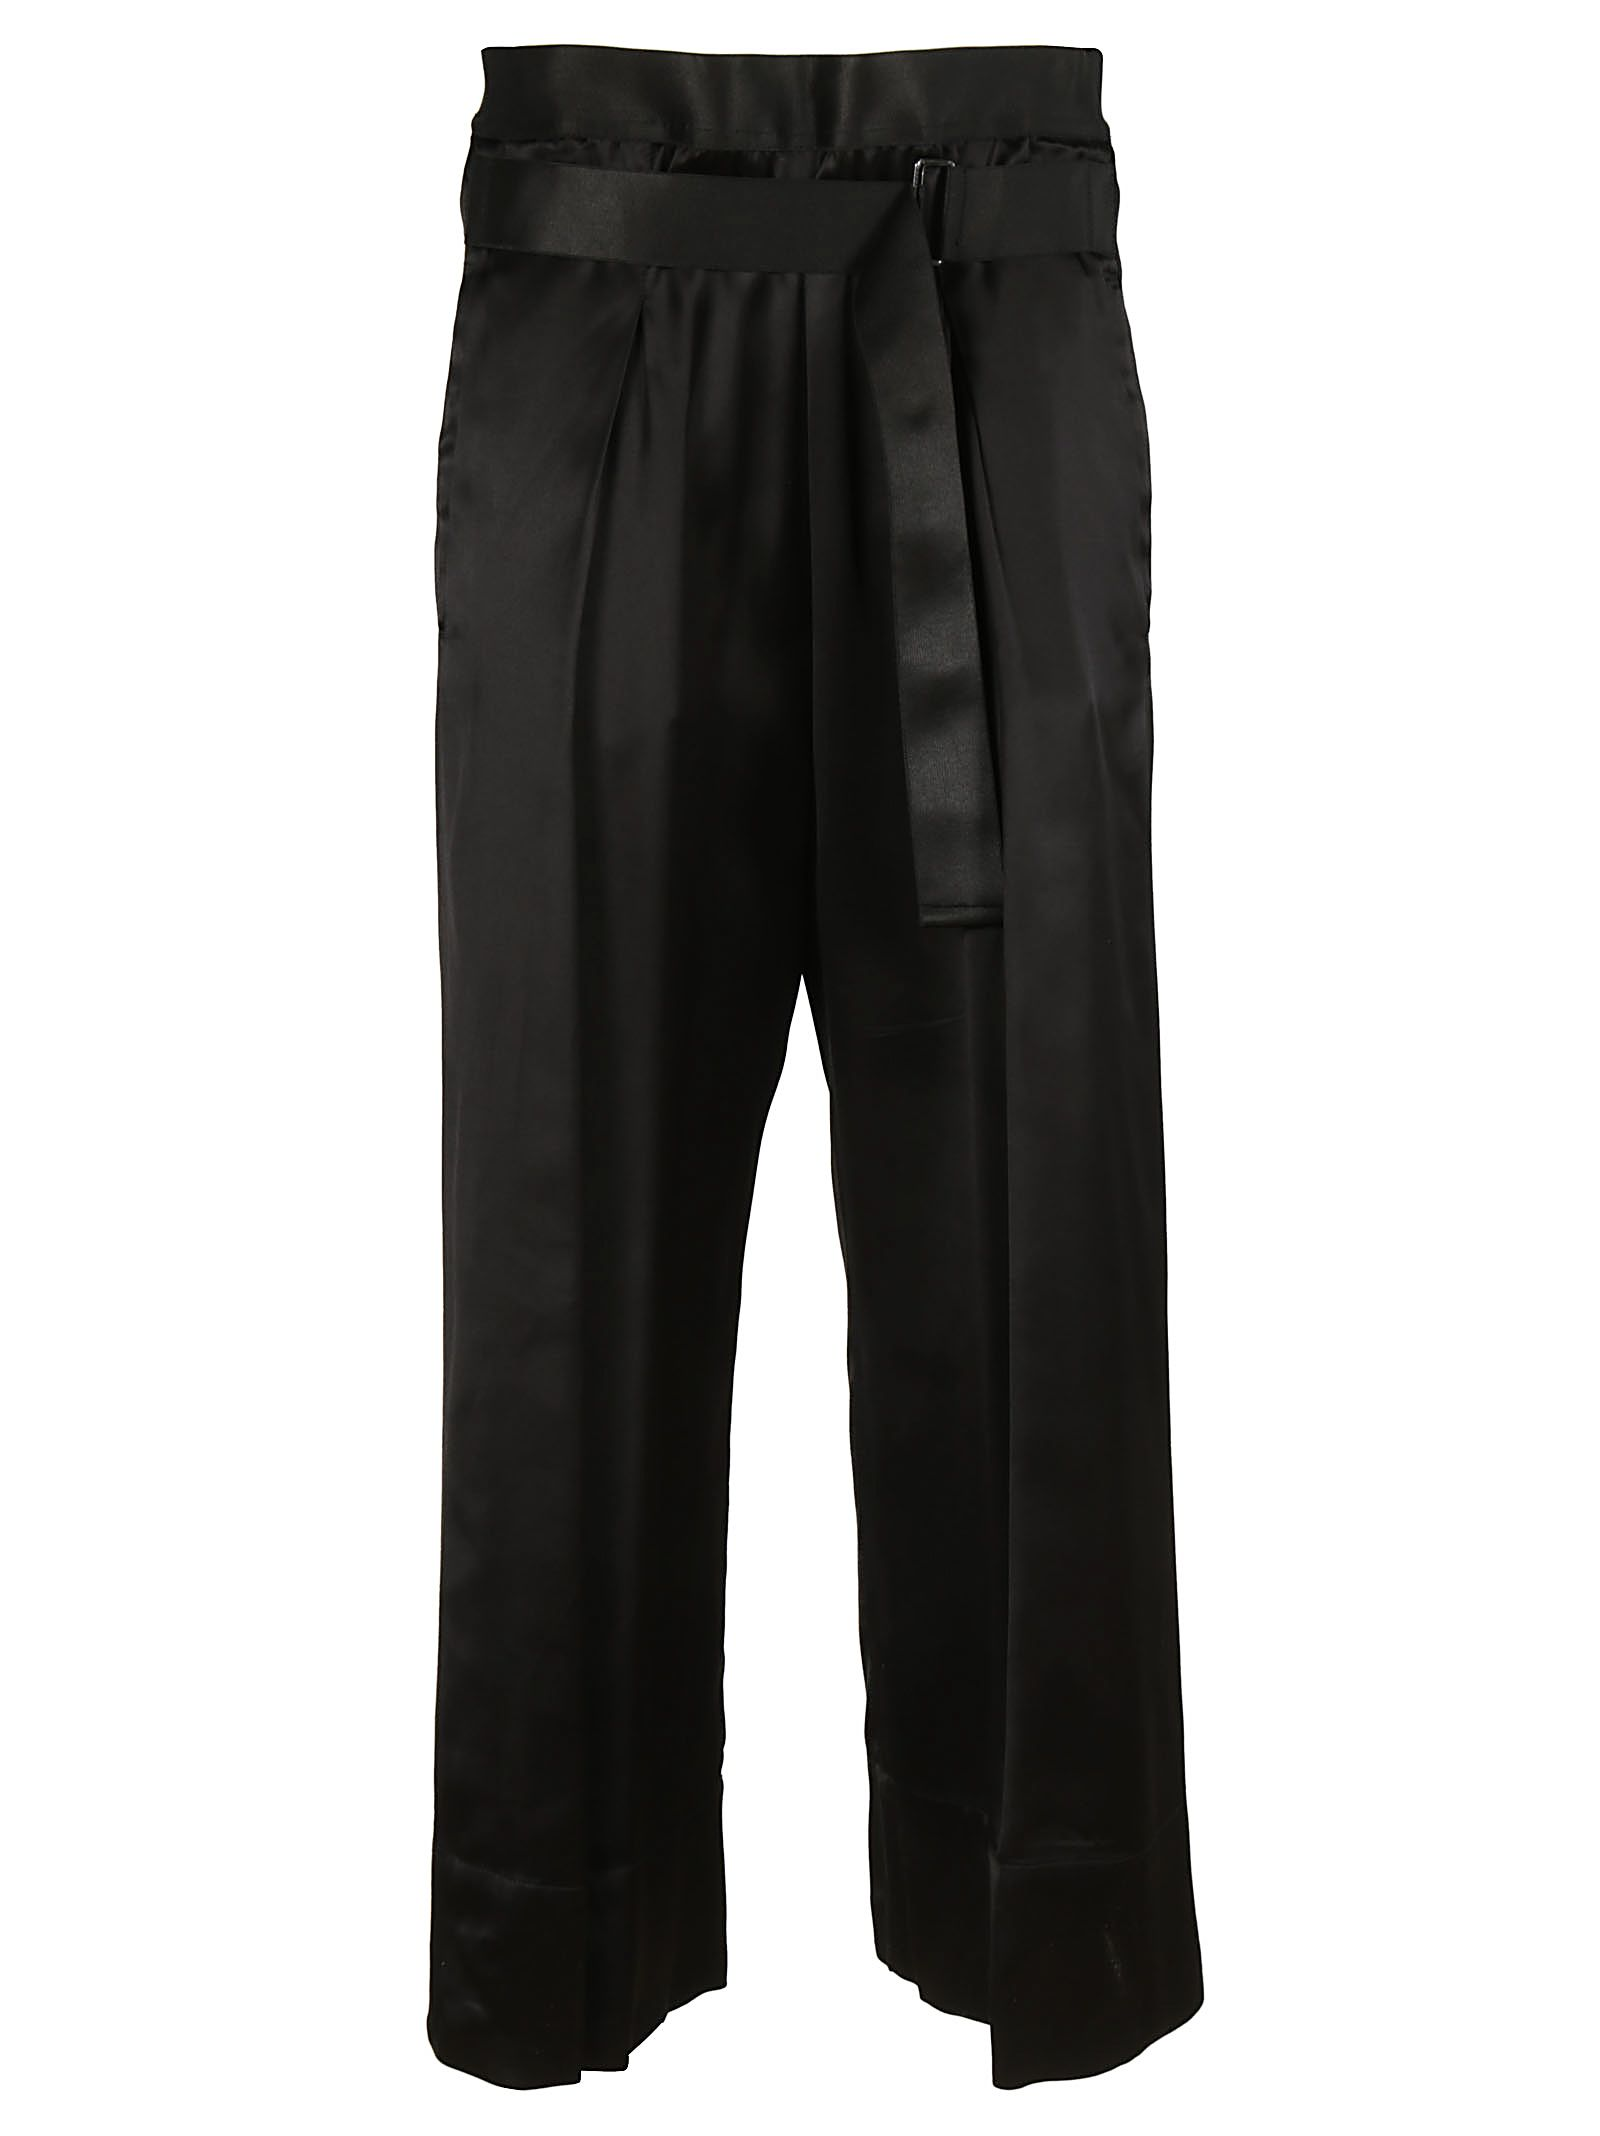 Ann Demeulemeester Belted Cropped Trousers